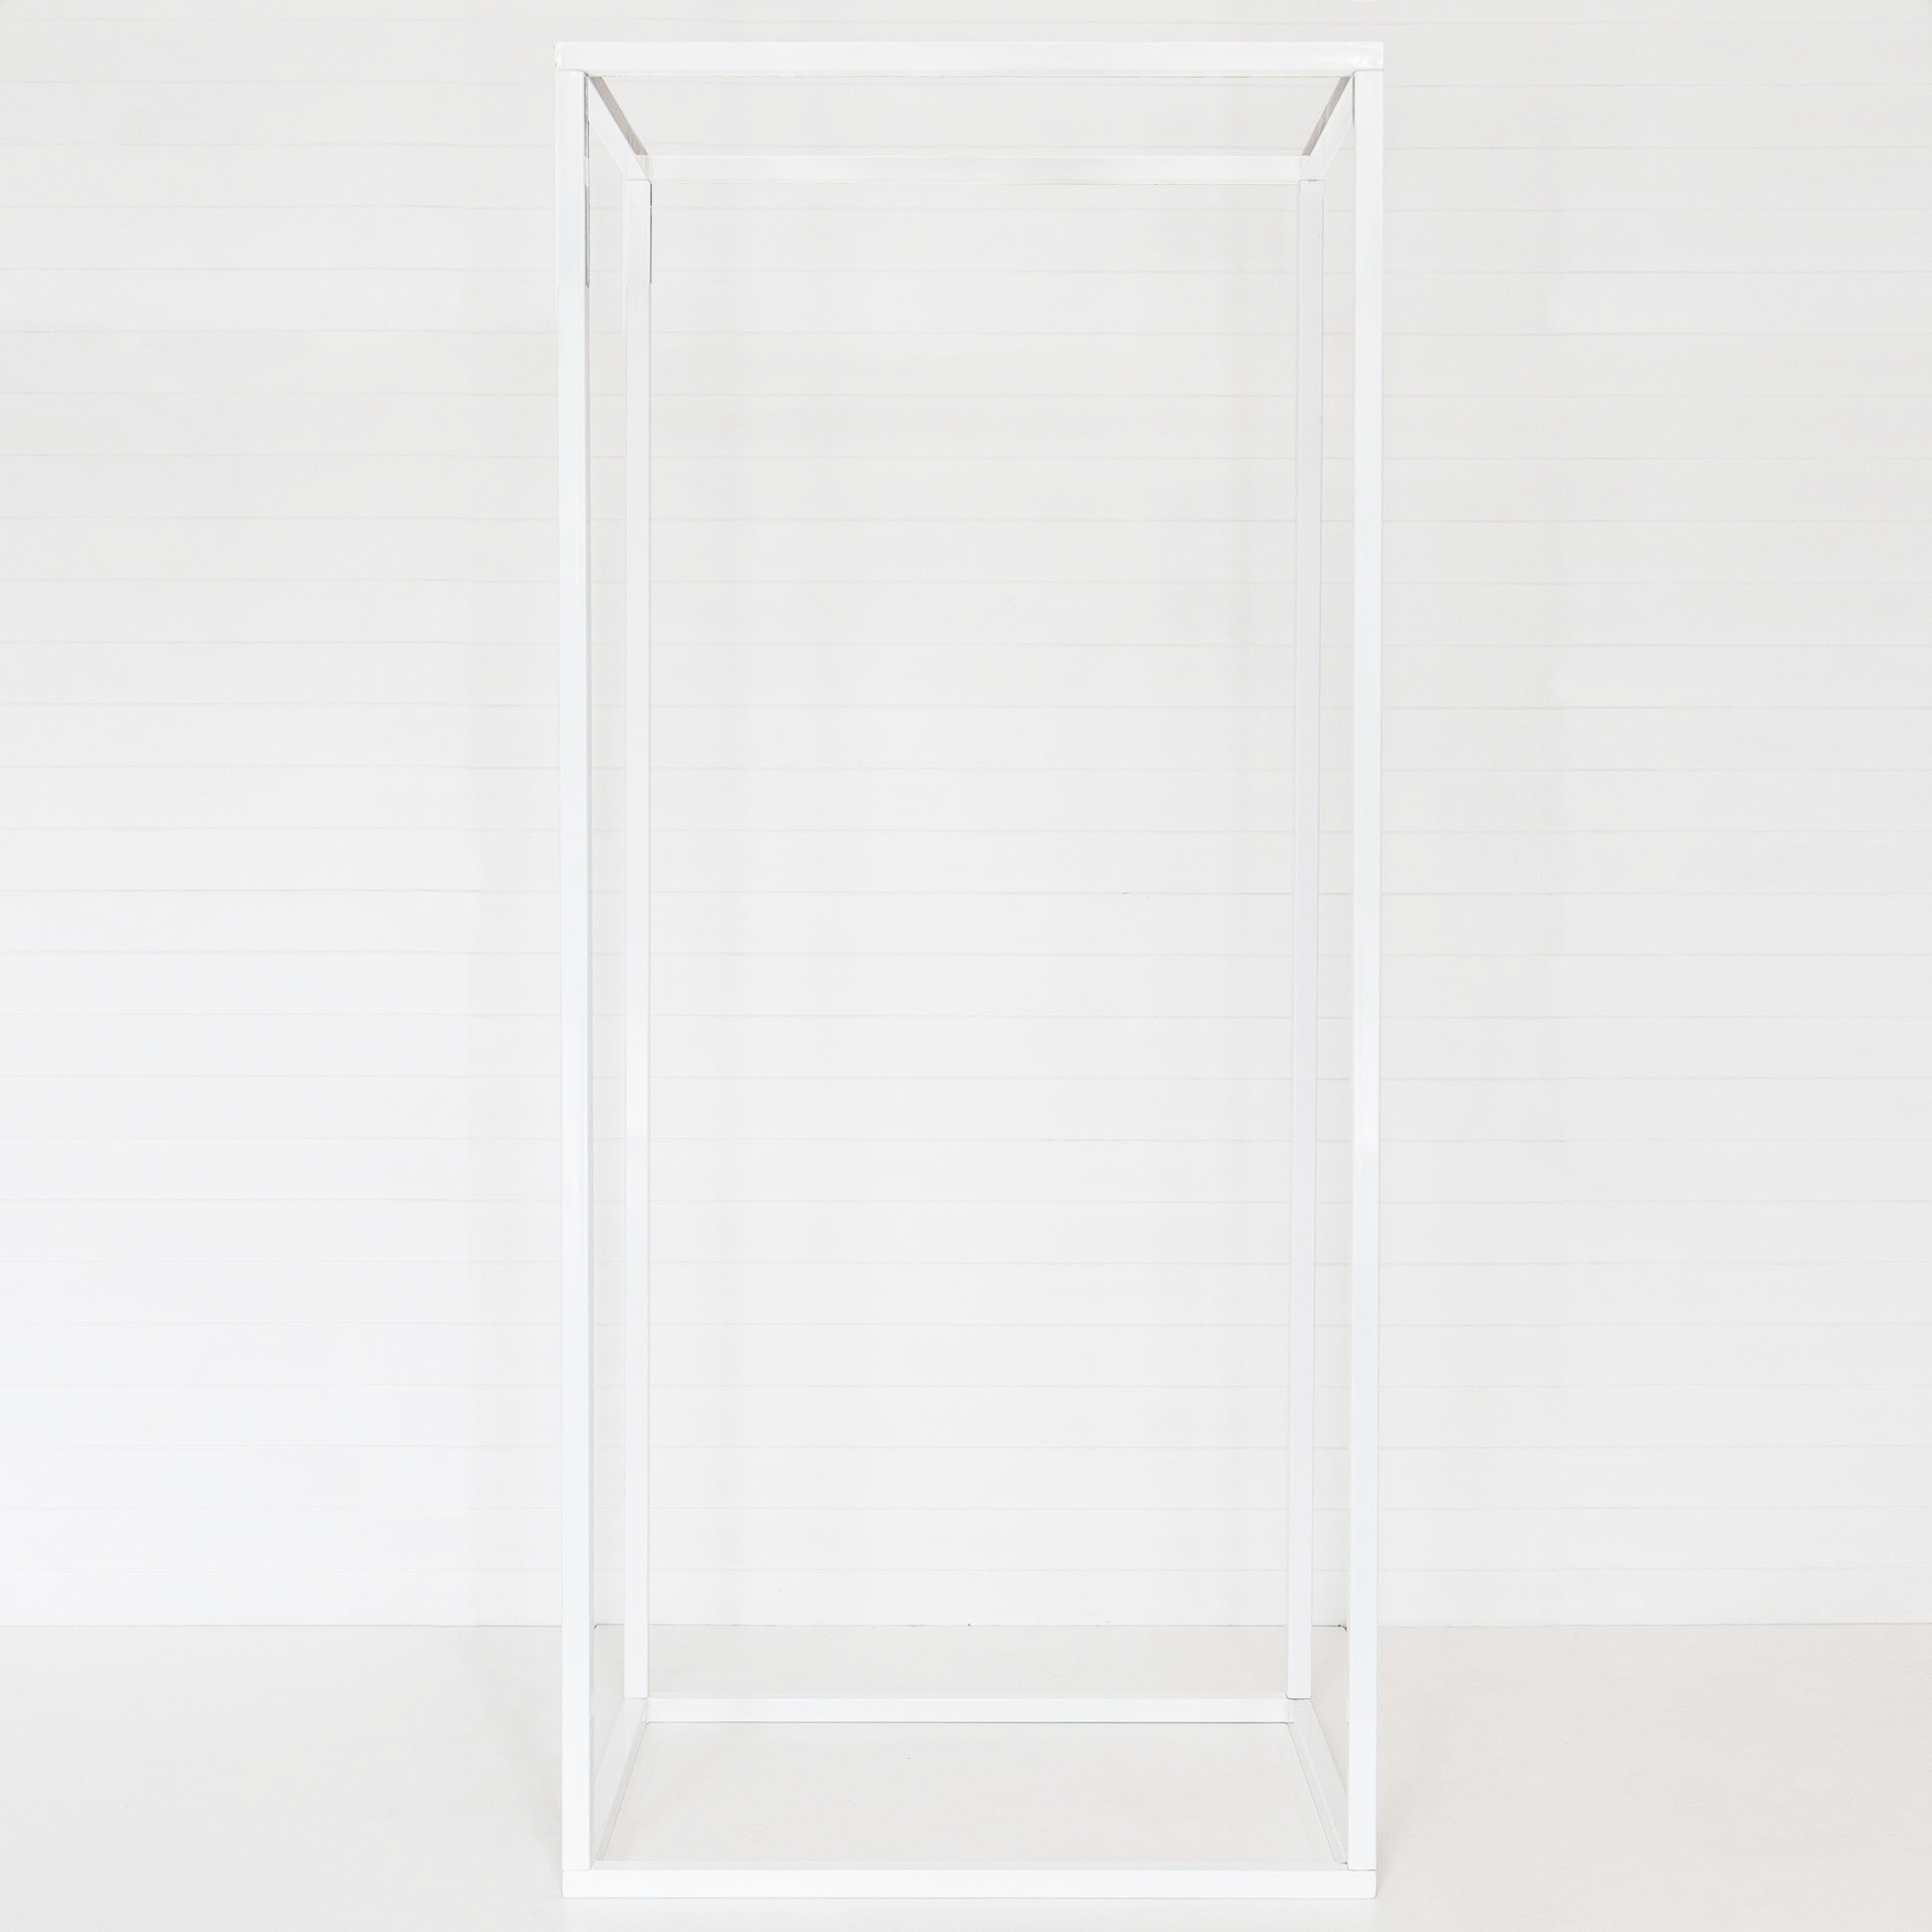 WHITE UNIVERSAL FRAME STRUCTURE